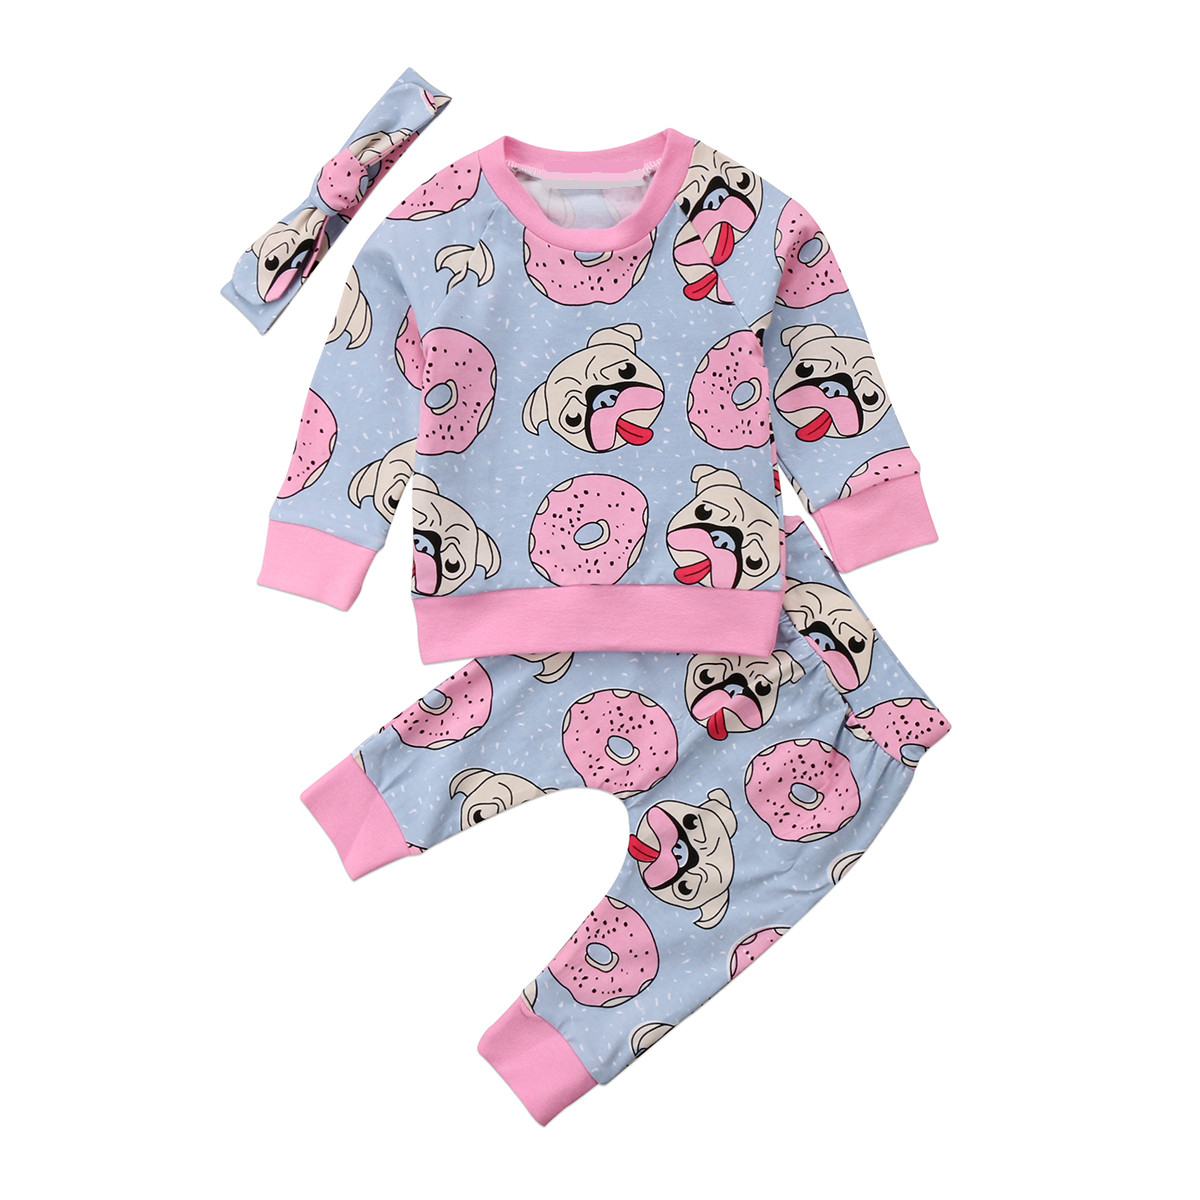 2017 Newborn Baby Girl Outfit Clothes Long Sleeves ...